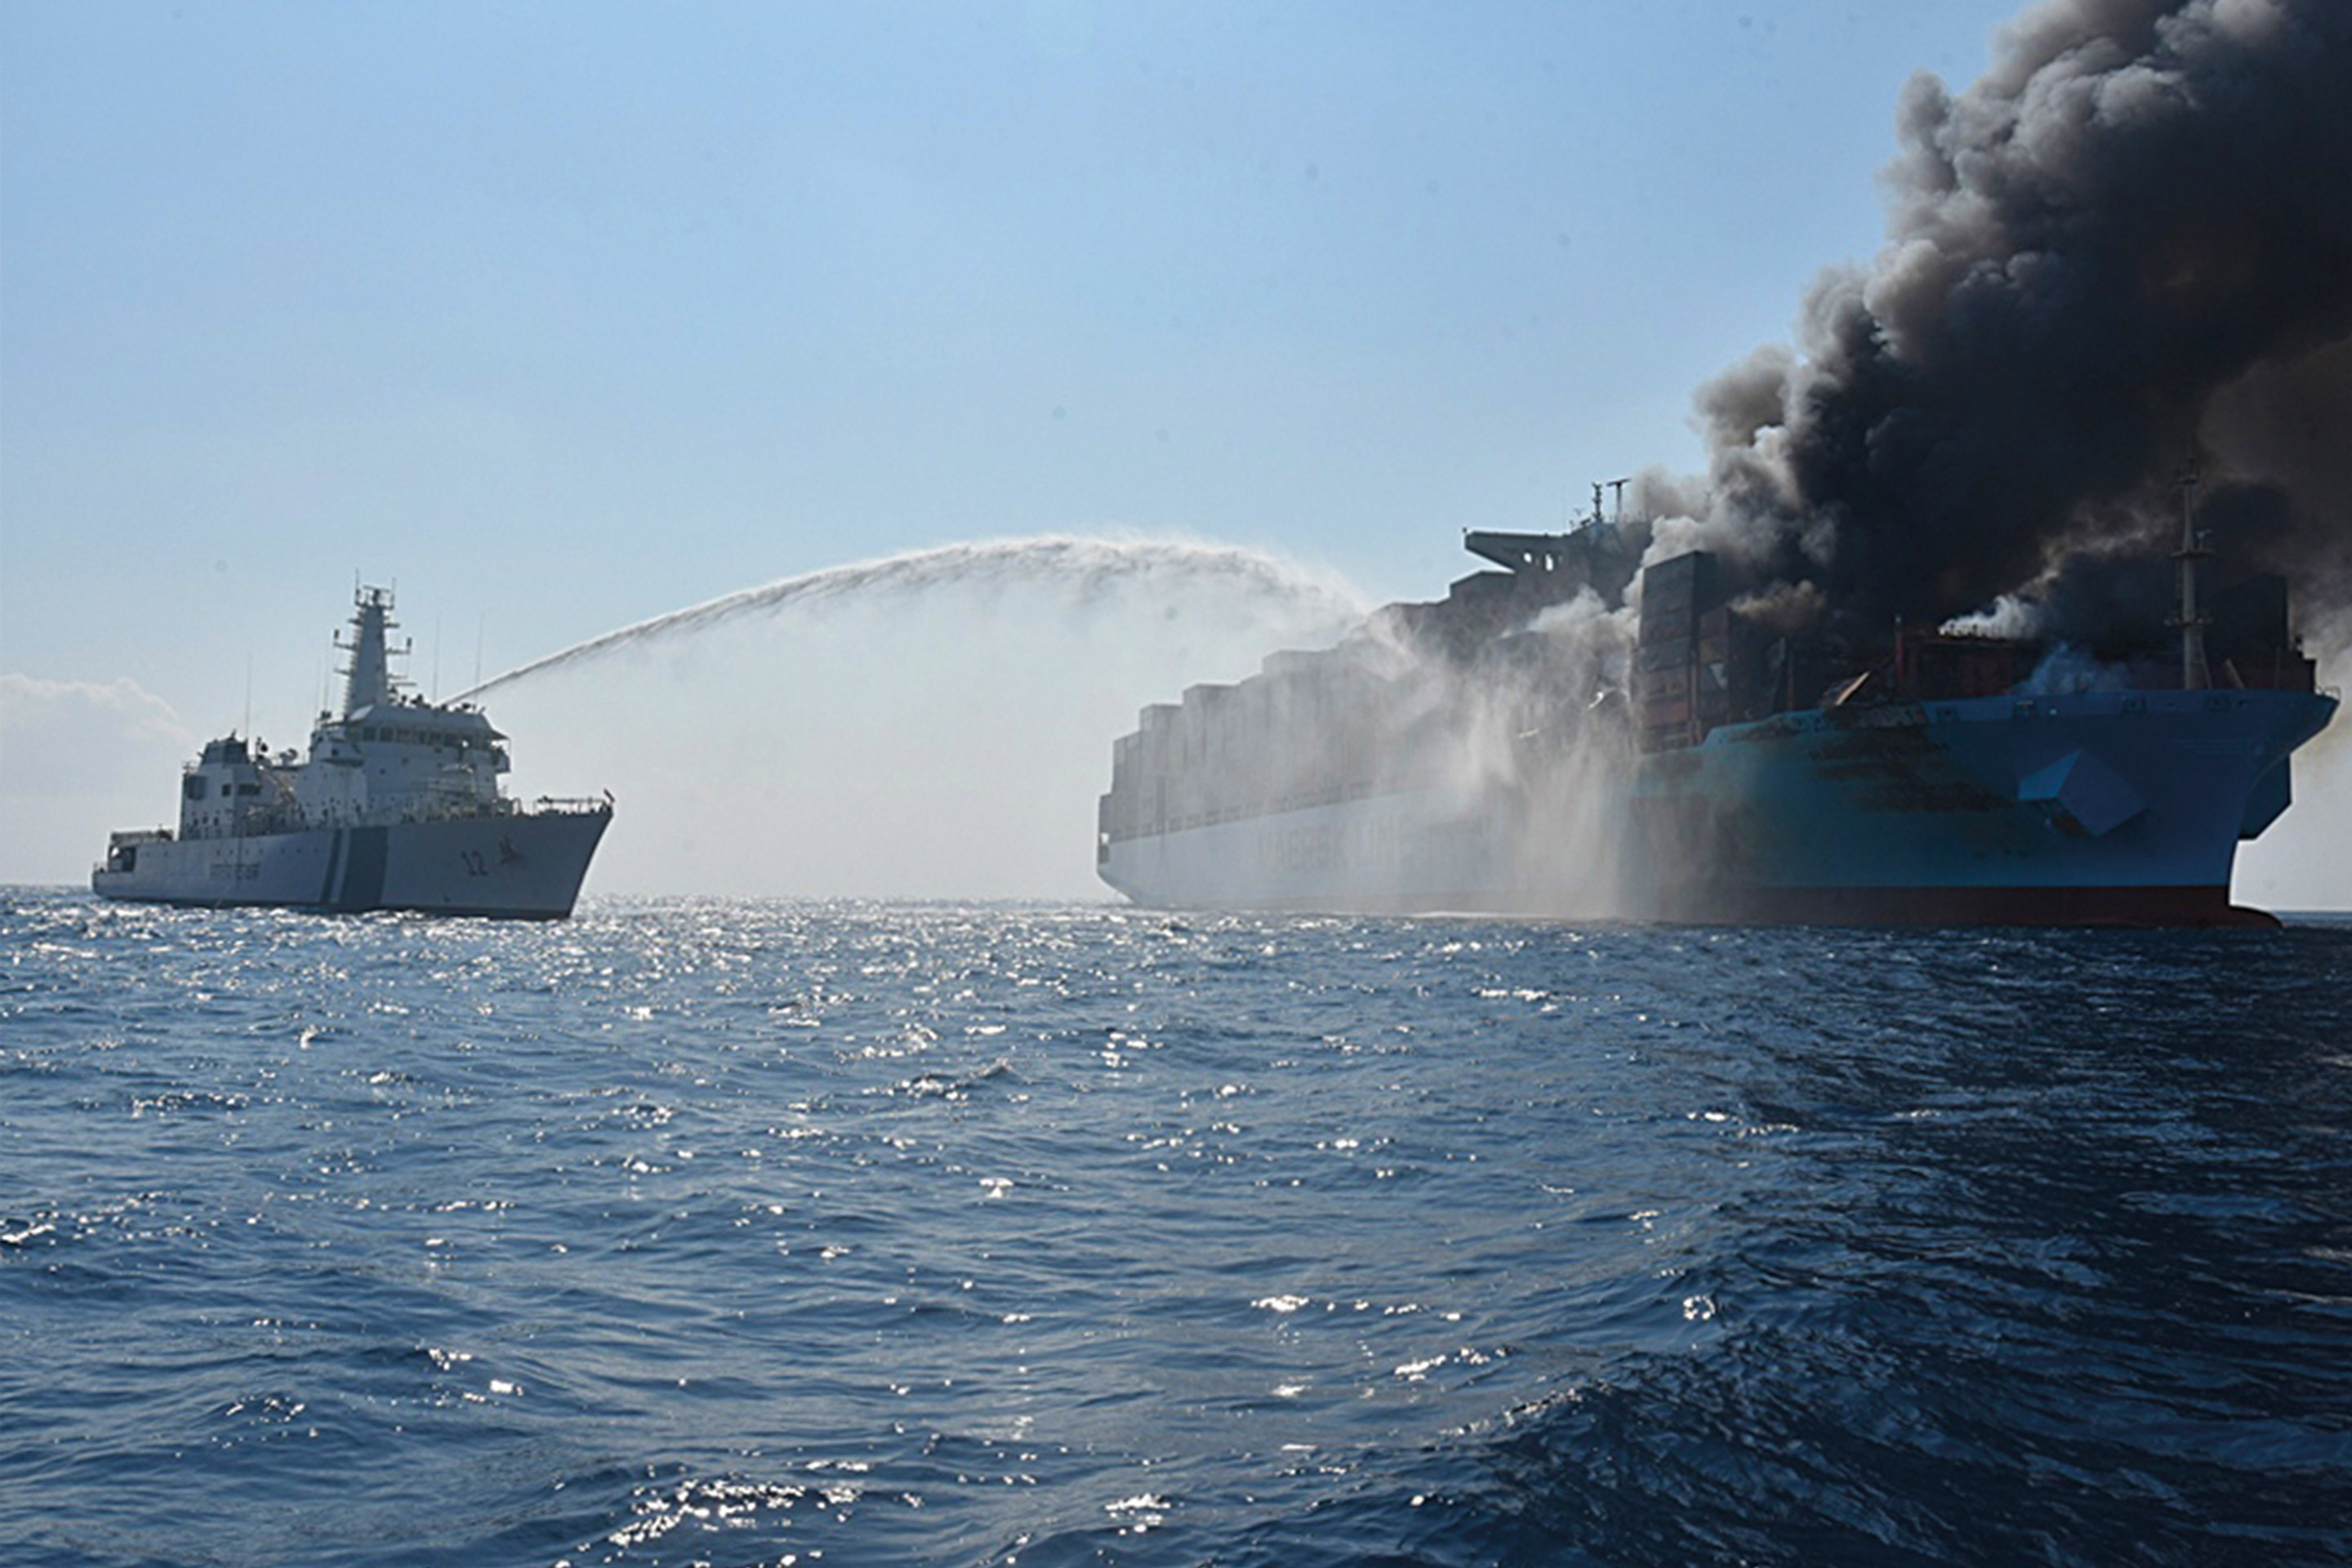 Salvage operation of the Maersk Honam